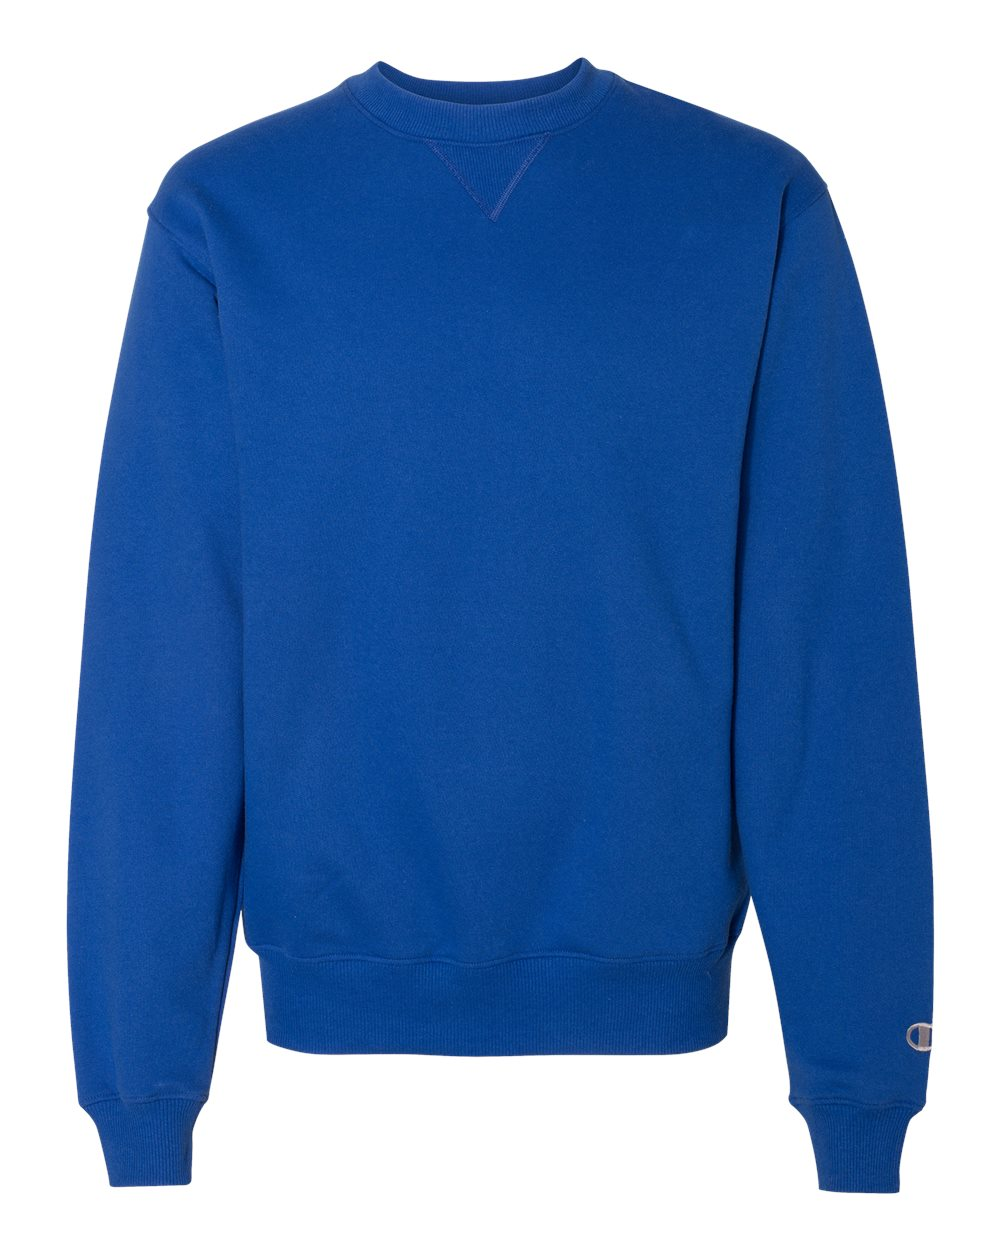 Champion S178 - Cotton Max Crewneck Sweatshirt